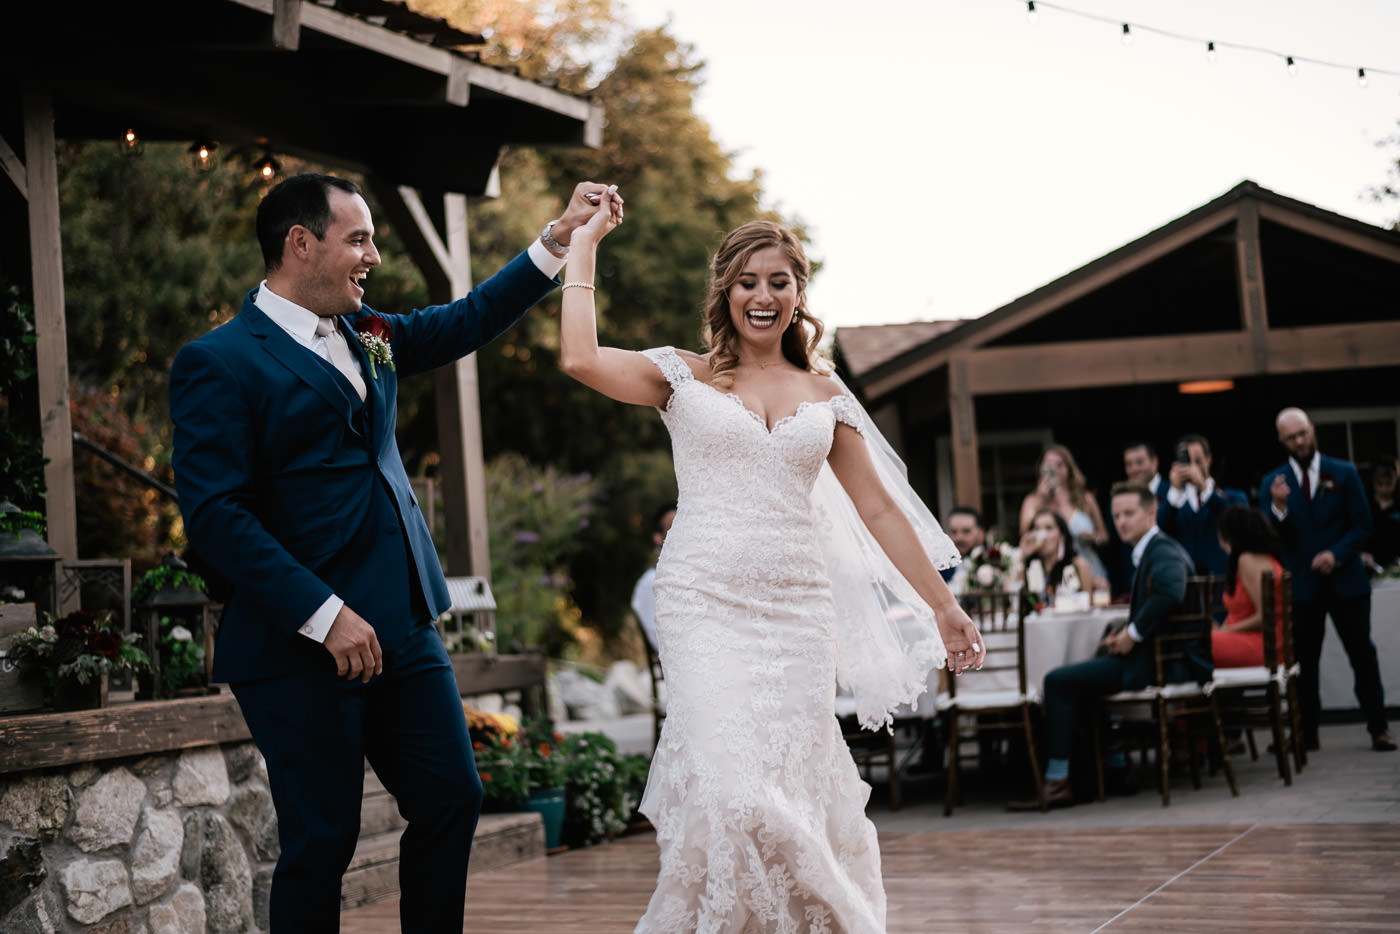 Every first dance should be filled with smiles and laughter like this.